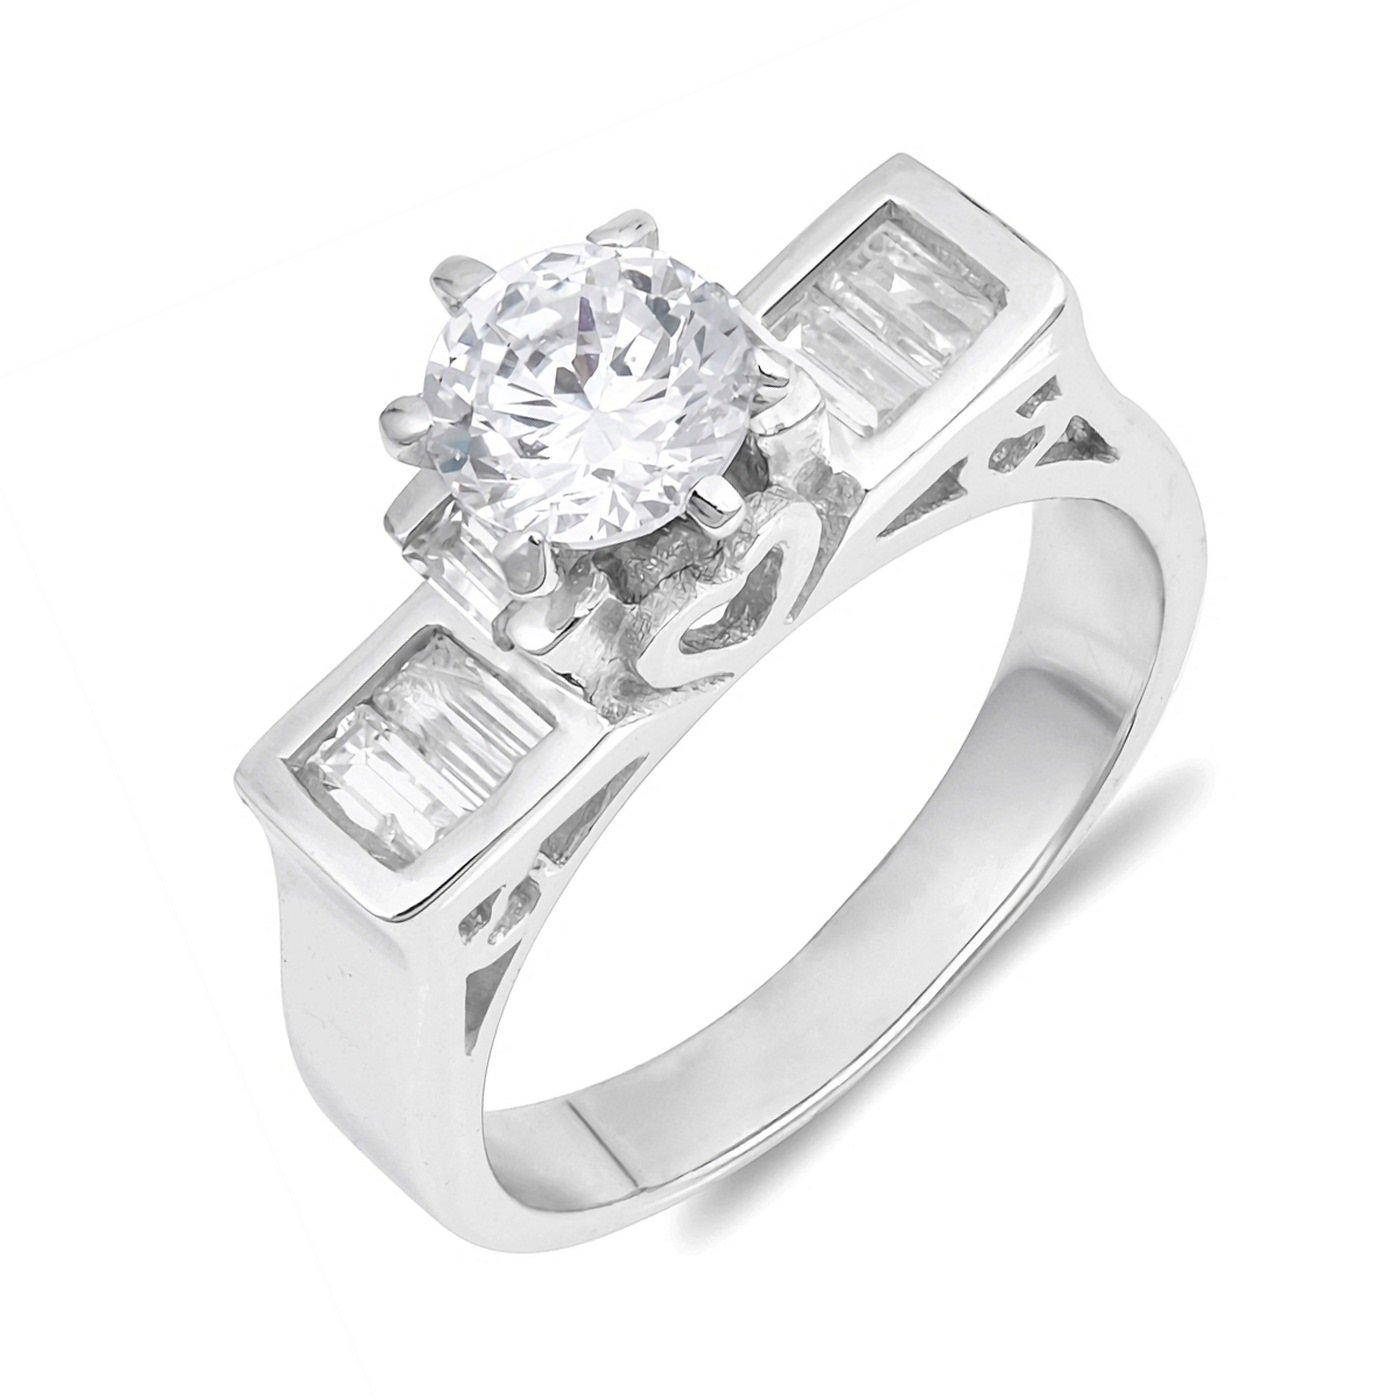 Round Cut Cubic Zirconia With Side CZ Womens Sterling Silver Ring Sizes 5-10